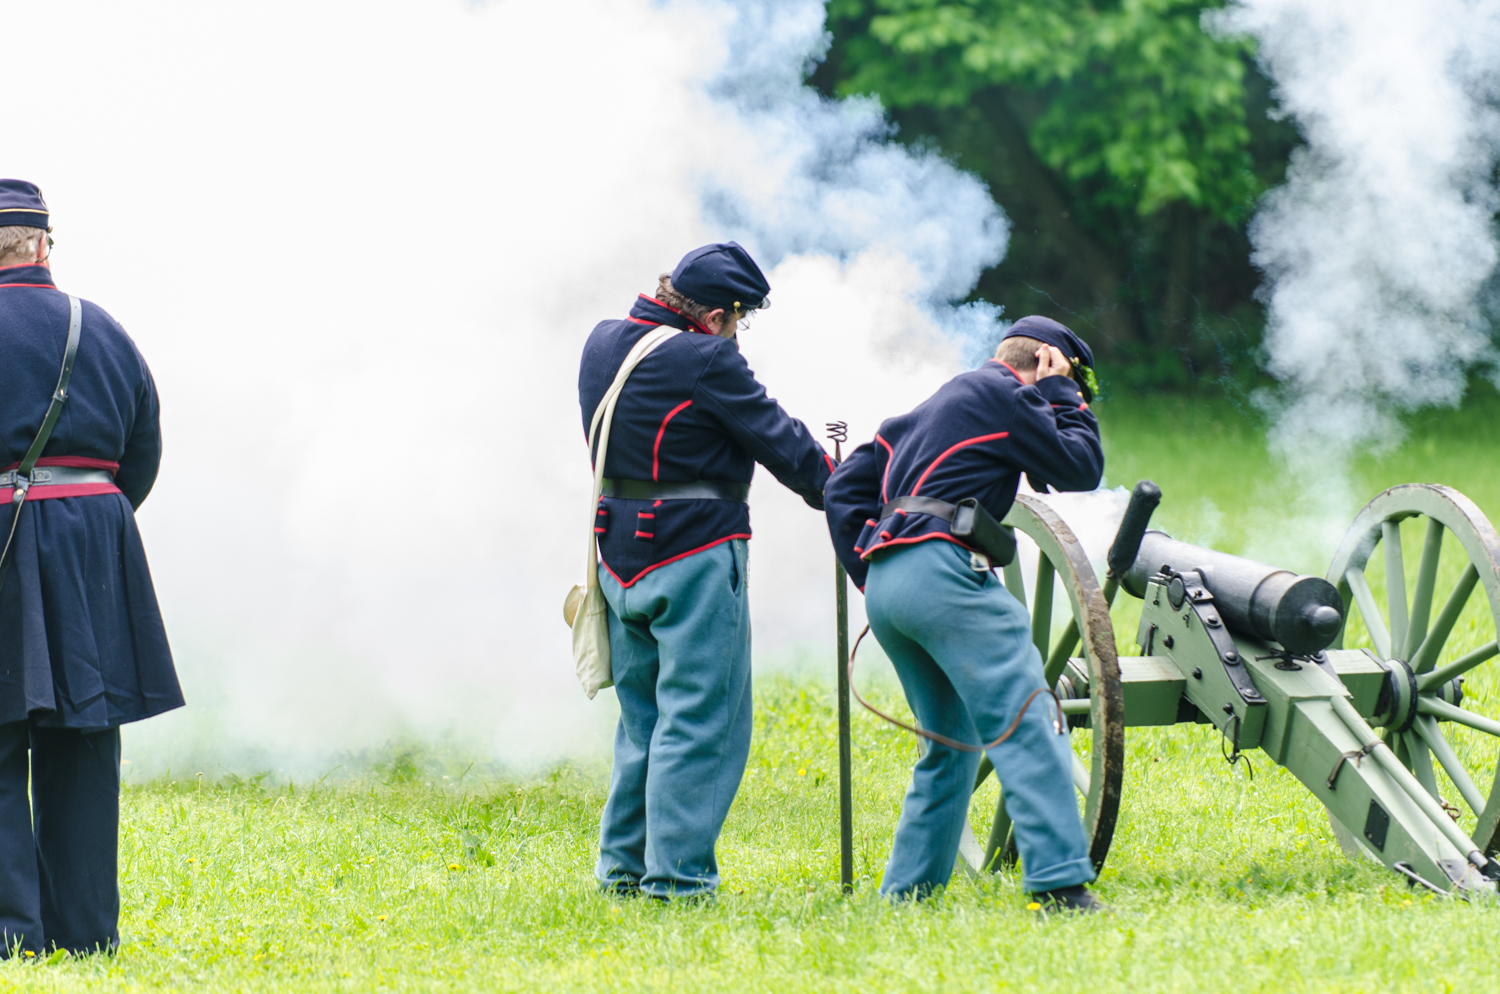 Cannon fire at the Civil War Reenactment at Heritage Village in Sharon Woods, Sharonville, Ohio.